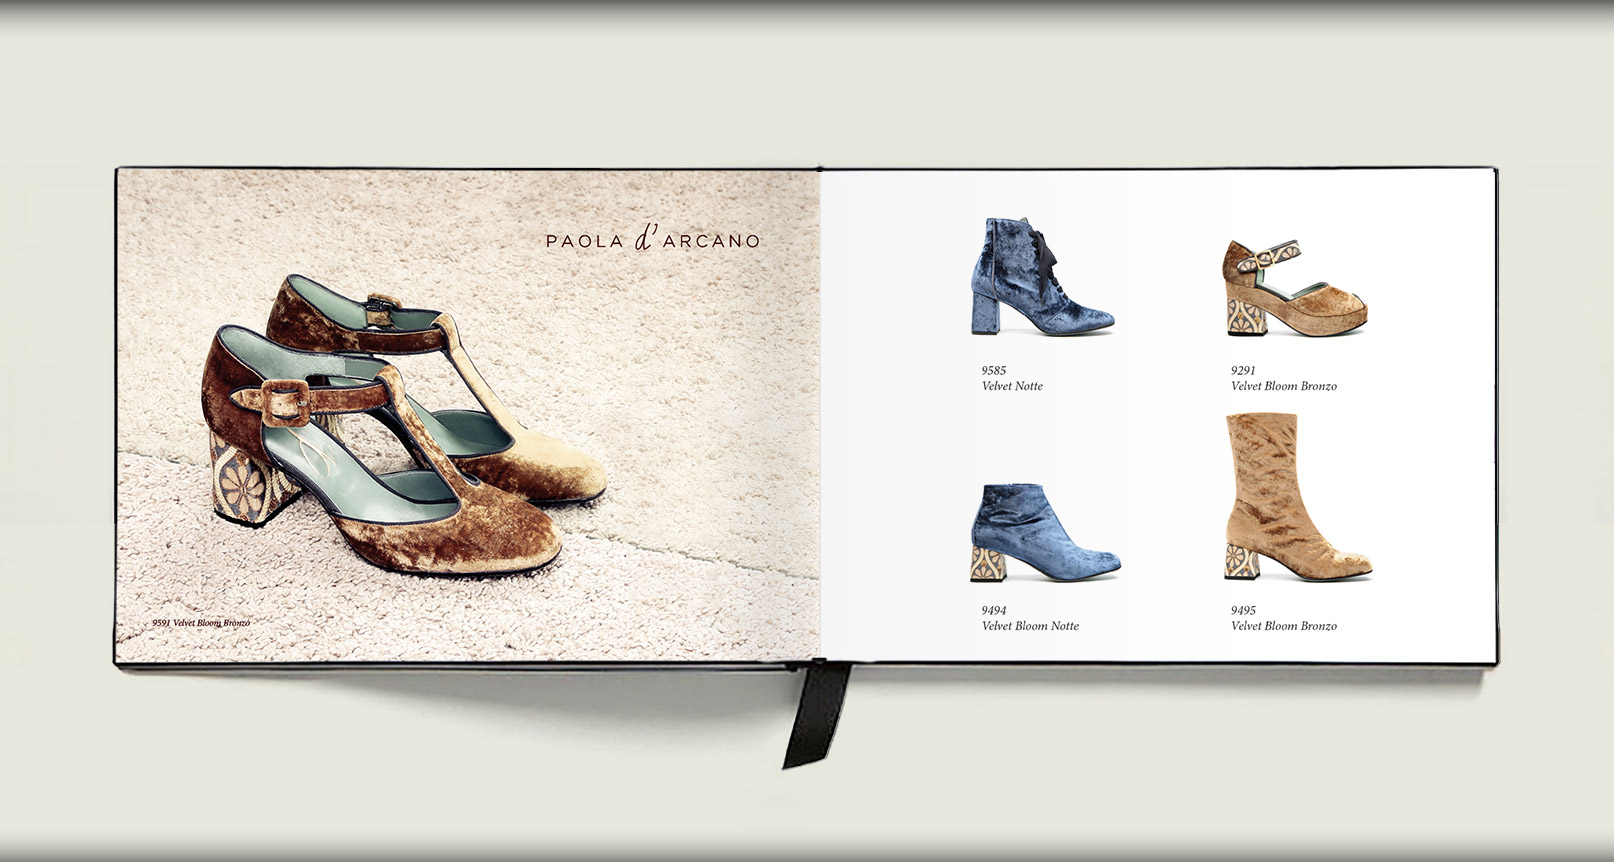 Advertising Paola D'Arcano Shoes Made in Italy - 6